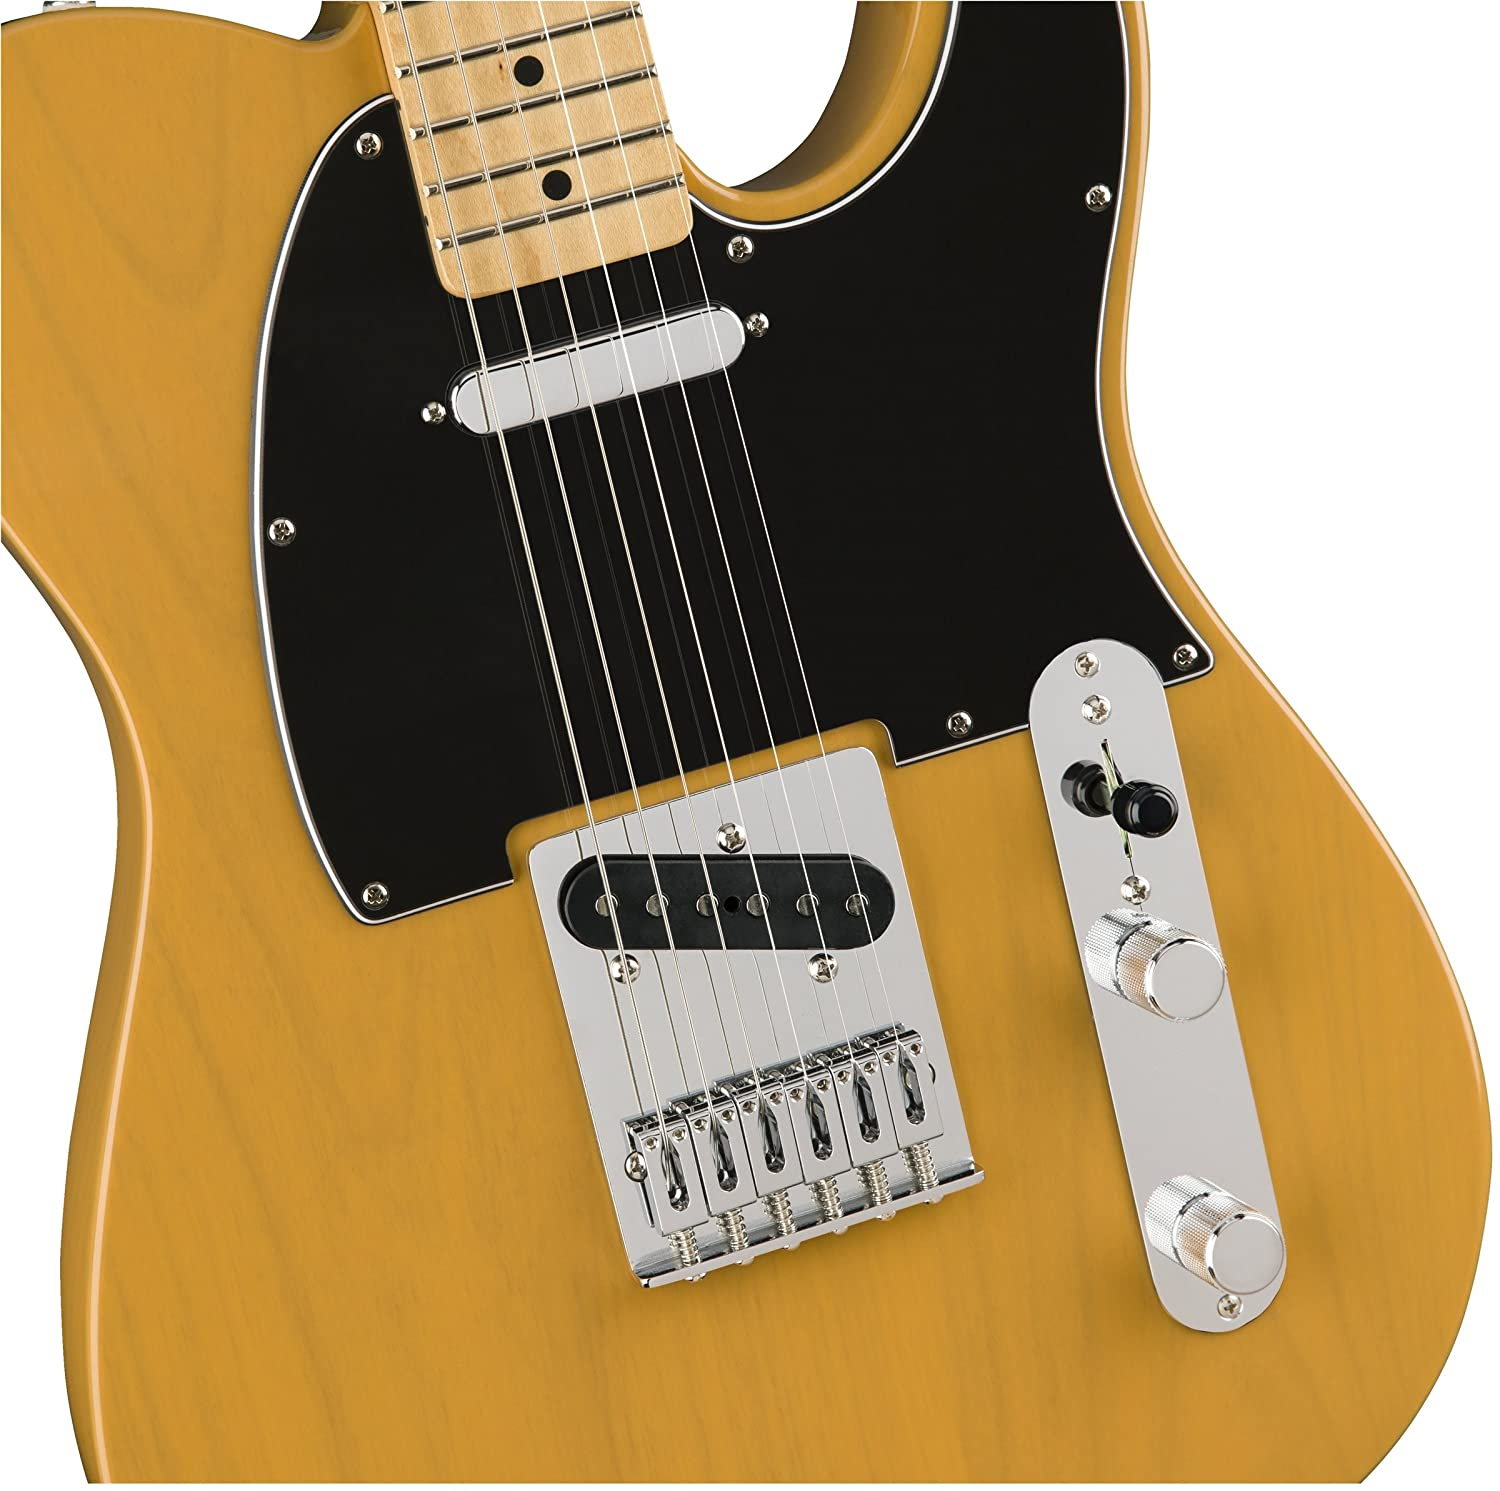 Fender Standard Telecaster Electric Guitar Maple The Wiring Blog Diagrams And Tips January 2011 Fingerboard Butterscotch Blonde Musical Instruments